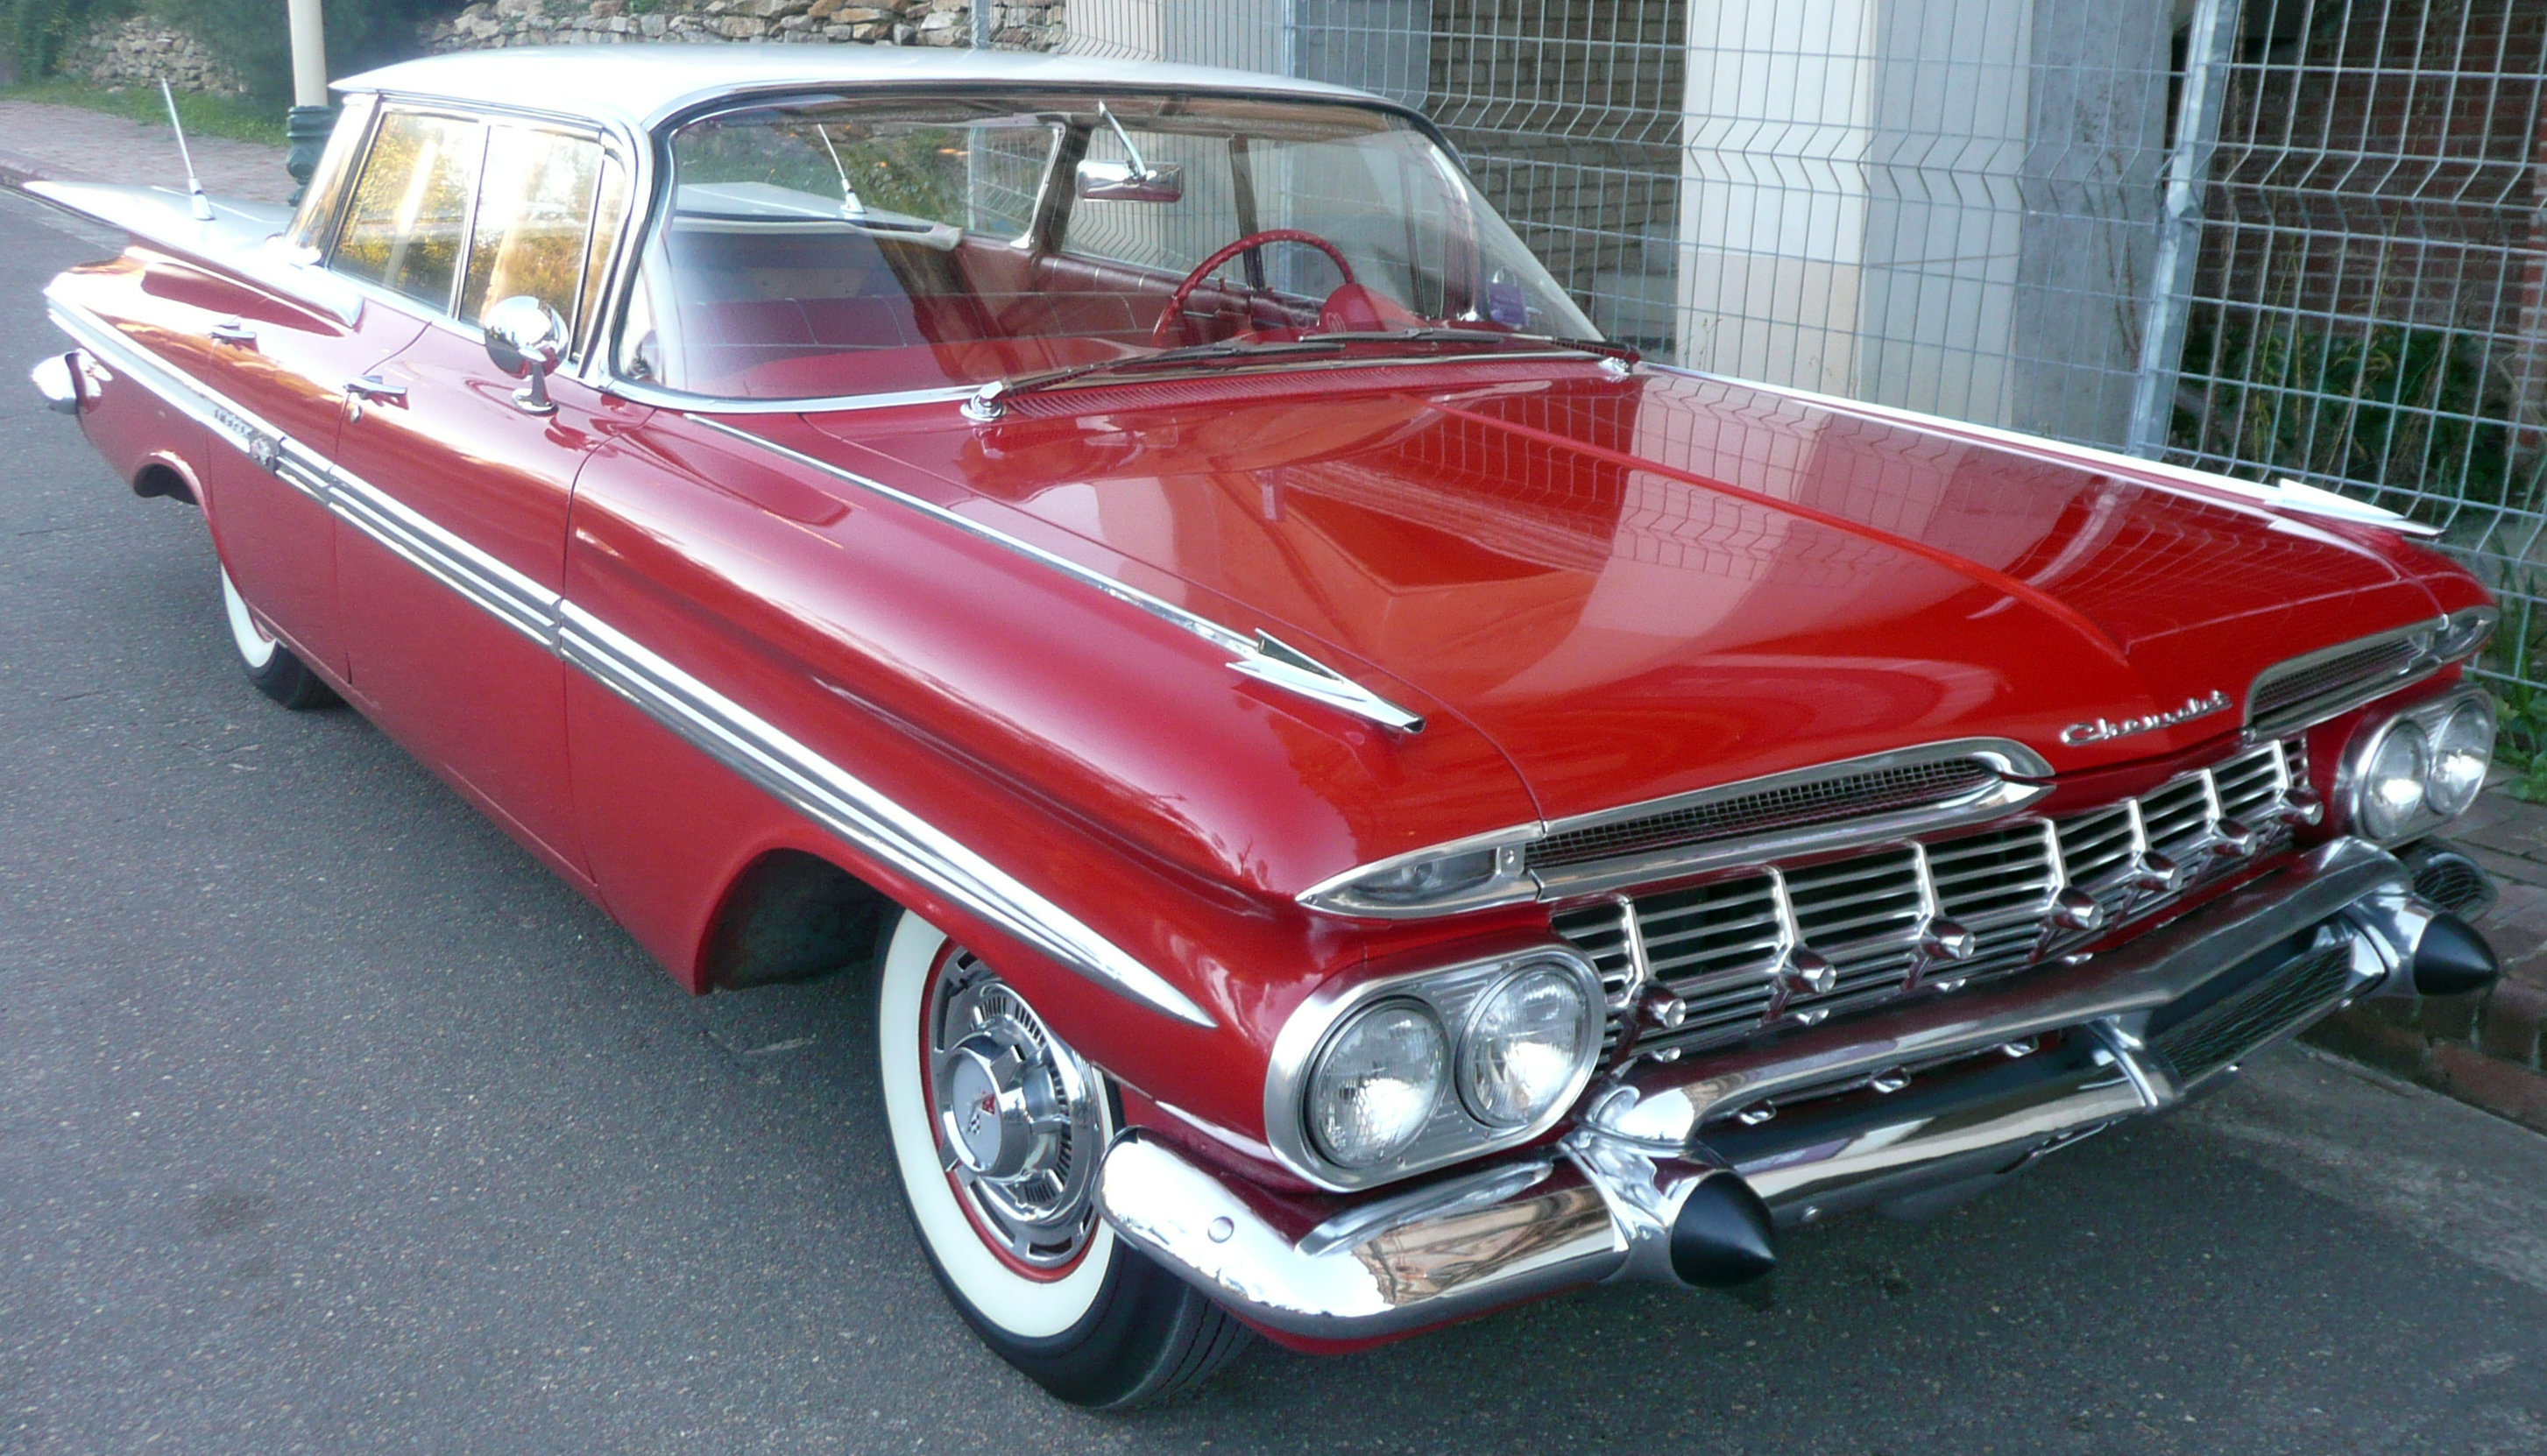 File:1958-1960 Chevrolet Impala sedan 01.jpg - Wikimedia Commons